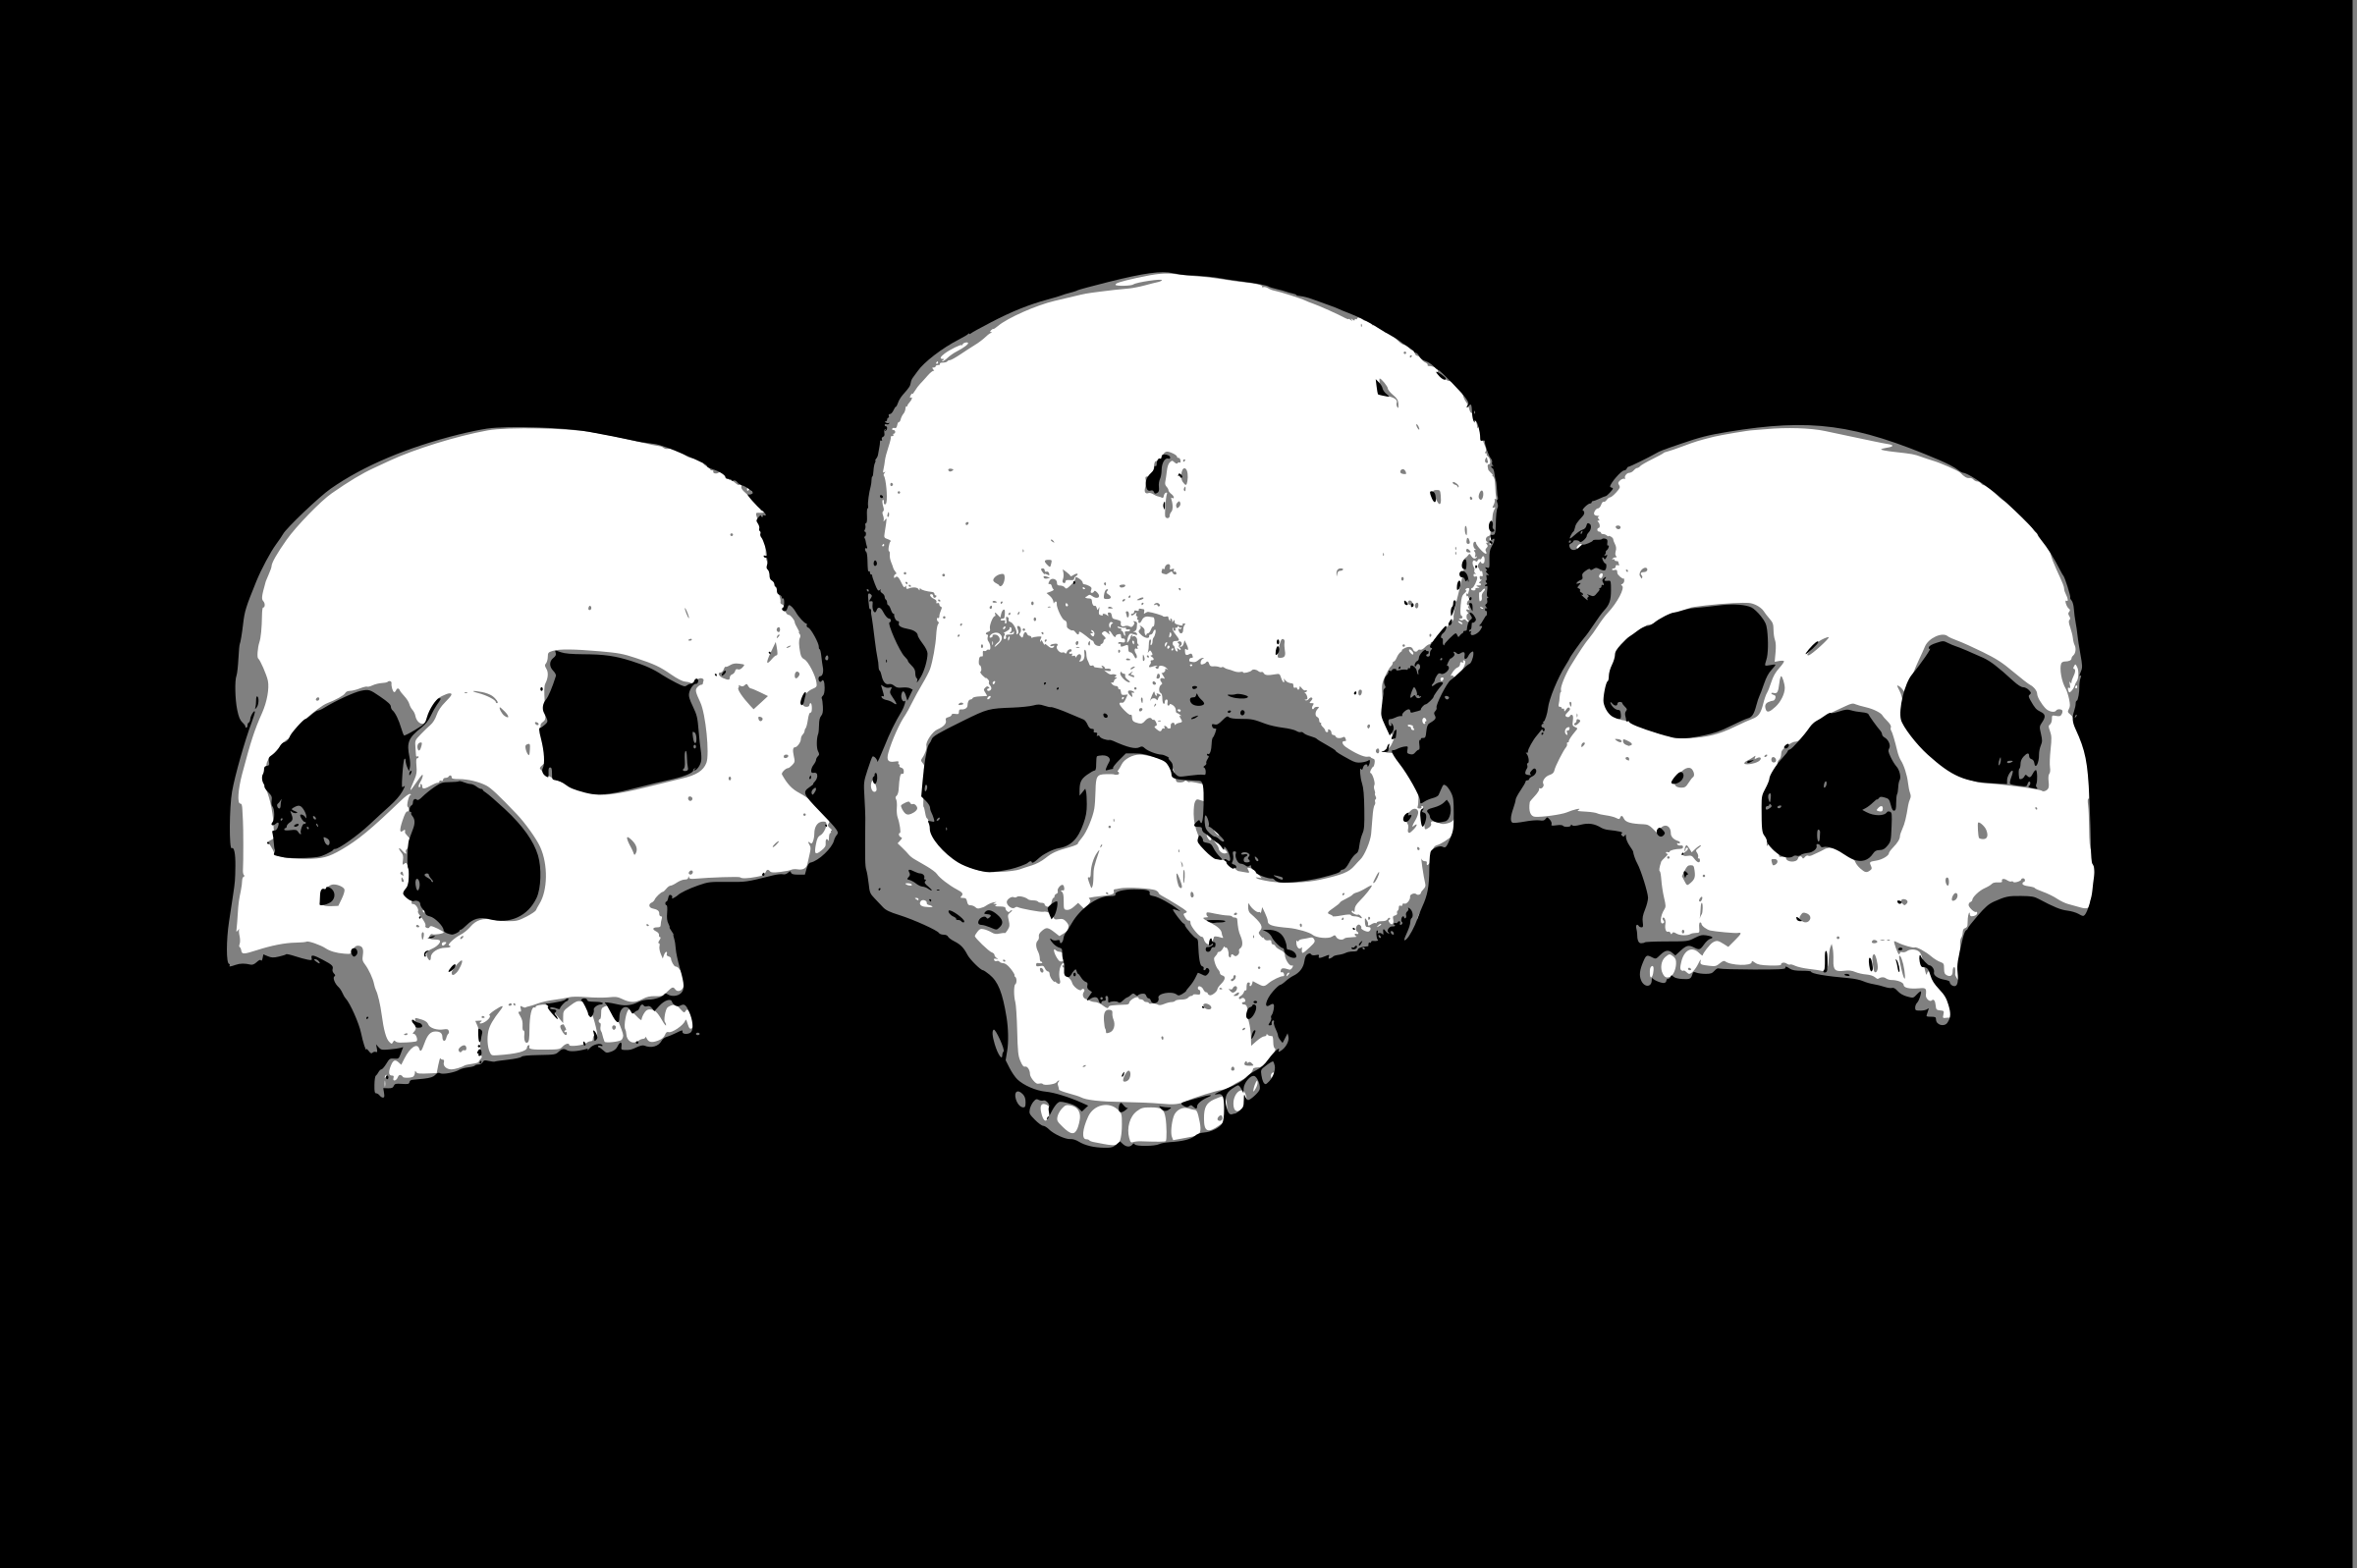 Three skulls by liftarn